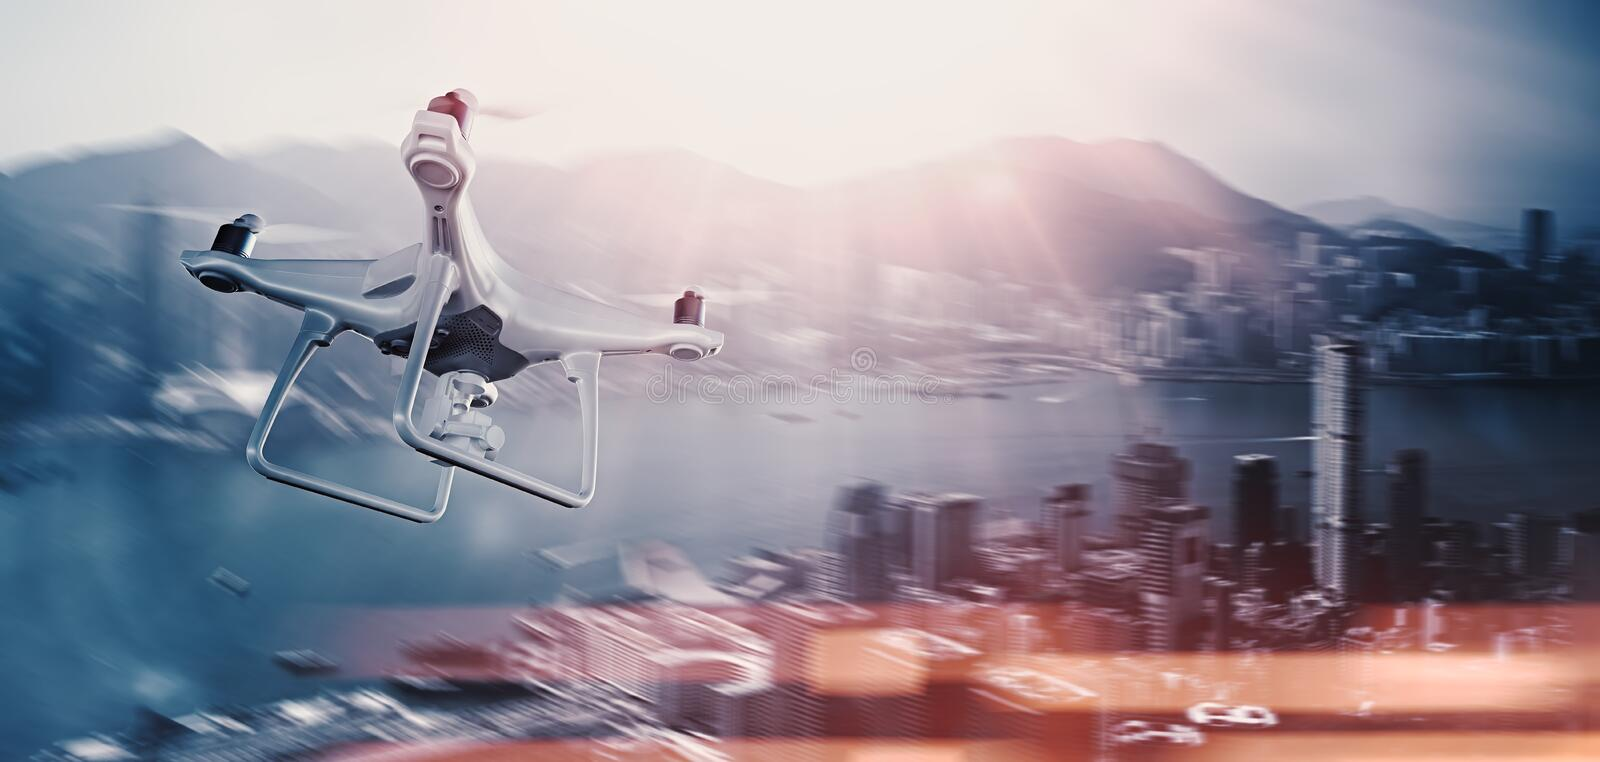 Photo White Matte Generic Design Remote Control Air Drone with action camera Flying Sky under City. Modern Megapolis. Background. Wide, side view. Motion Blur